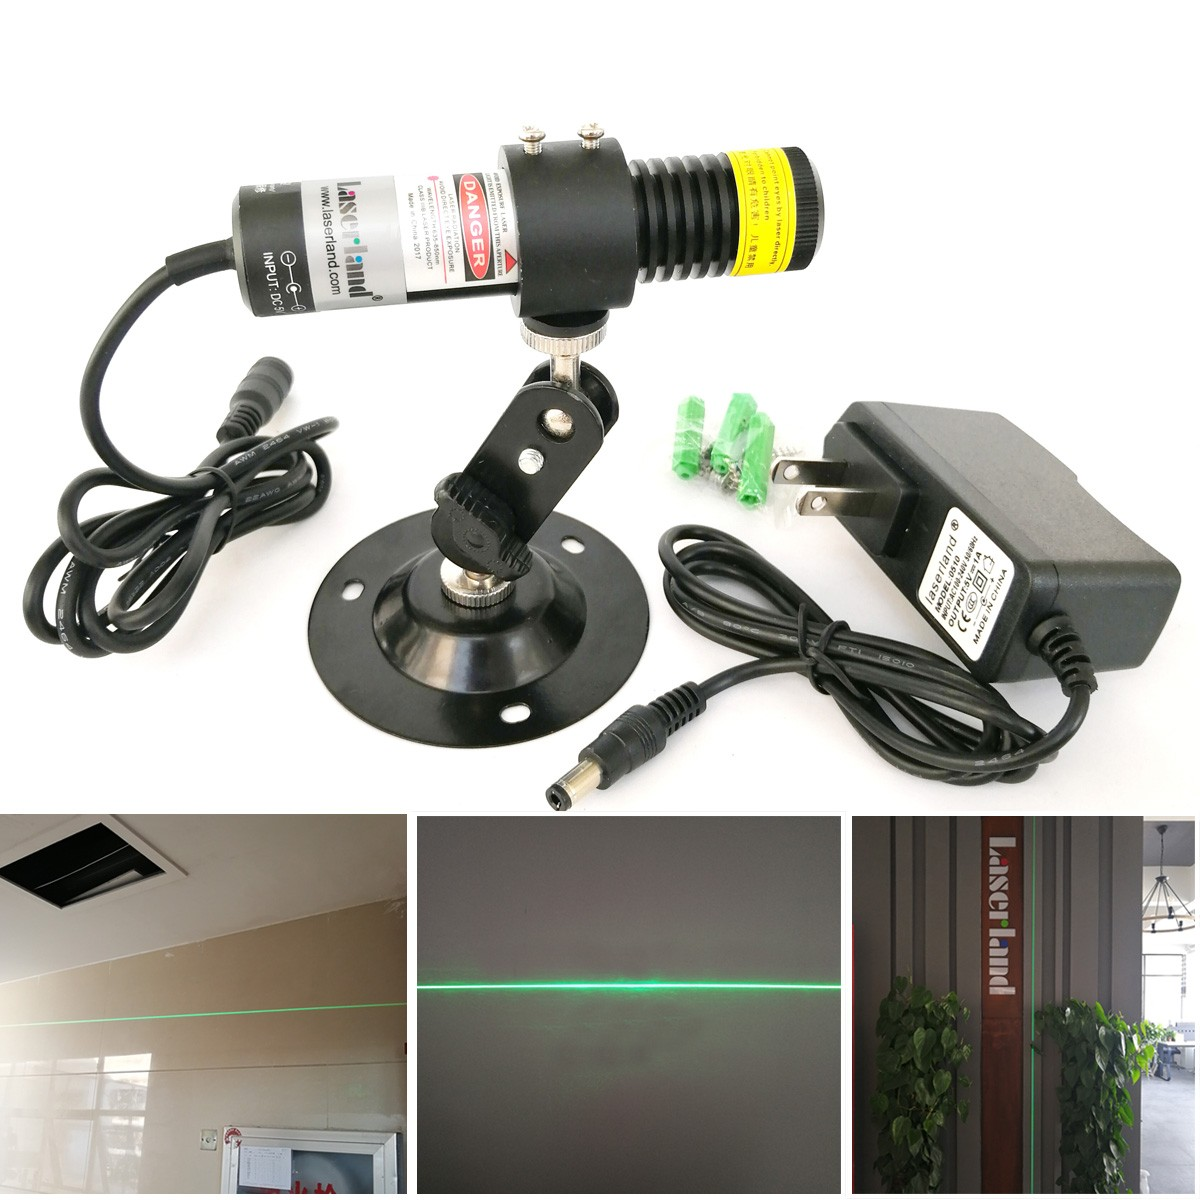 22*100 Water Proof 510nm 10mw 520nm 80mw 135mW Green Line Laser Diode Module for Stone Cutting Wood Cutting IP65 outdoor use